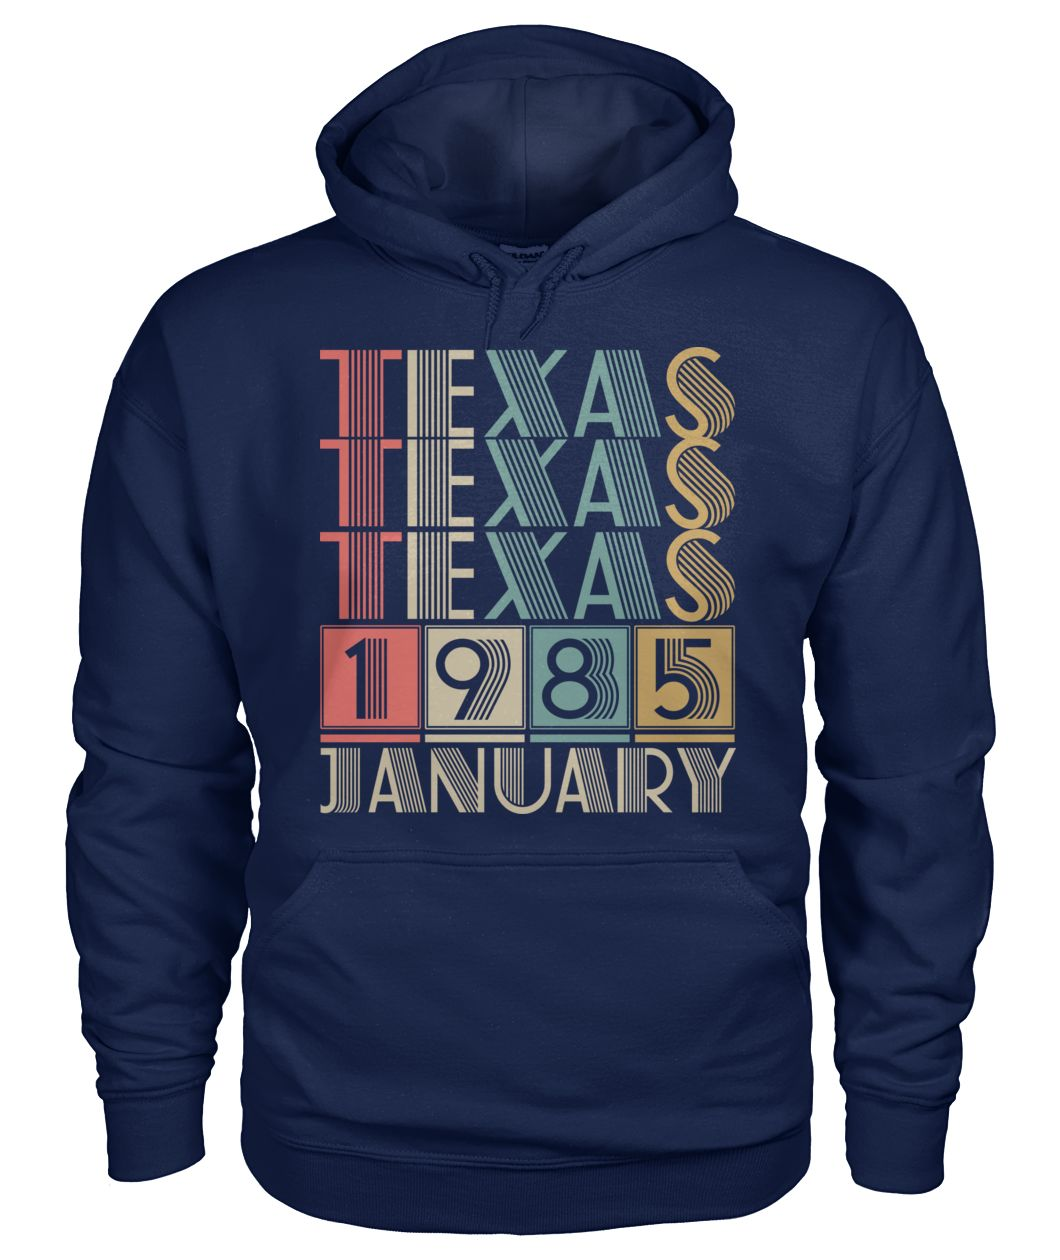 Born in Texas in January 1985 t shirt-Short Sleeves - TEEHOT.COM